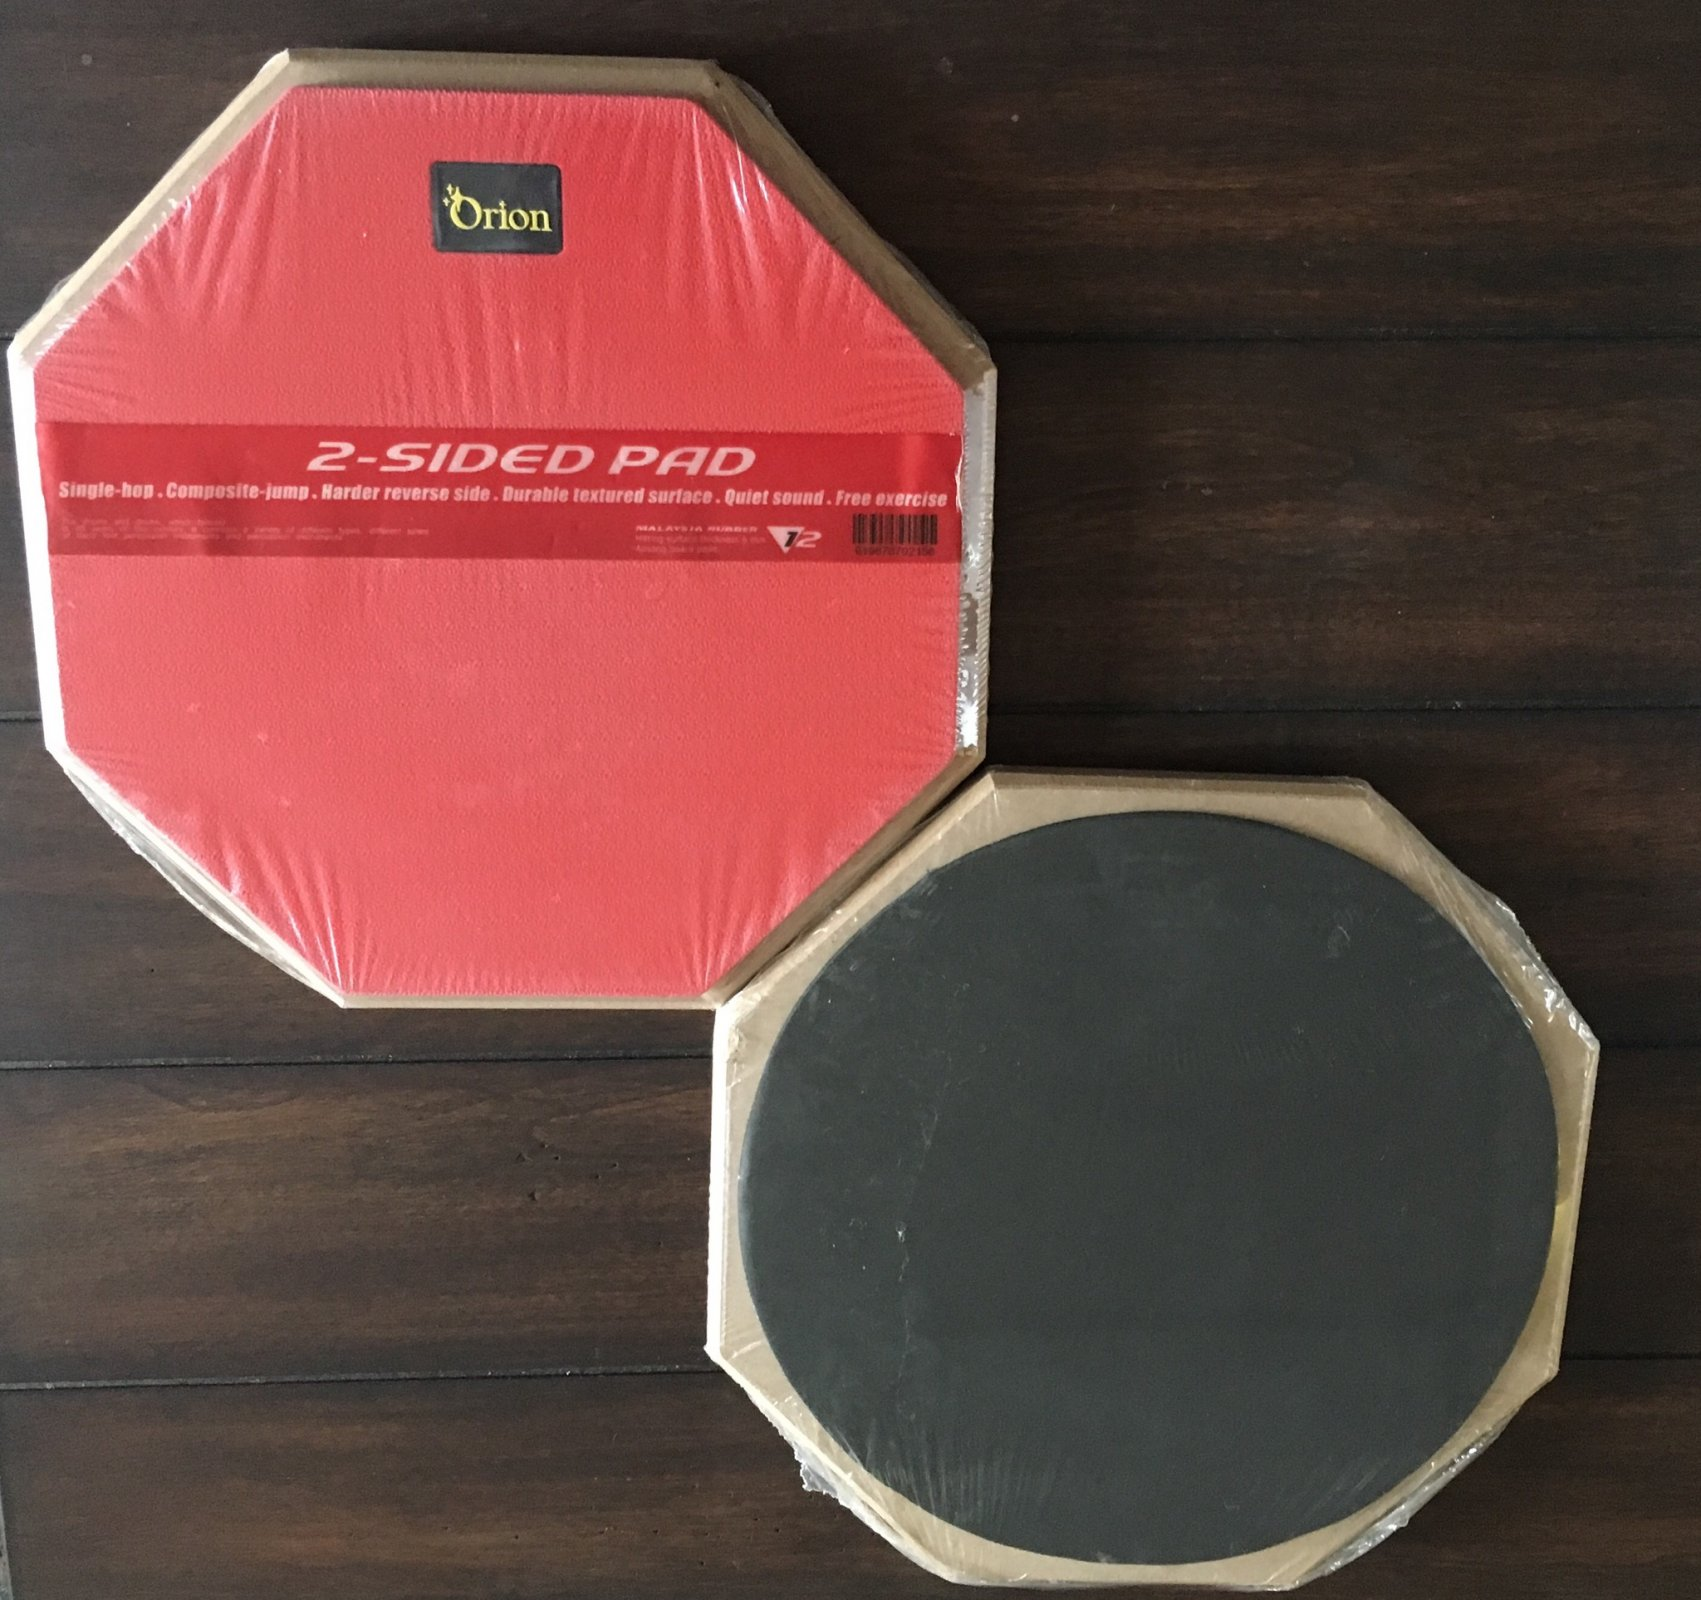 Orion 12 2-Sided Drum Pad - Red